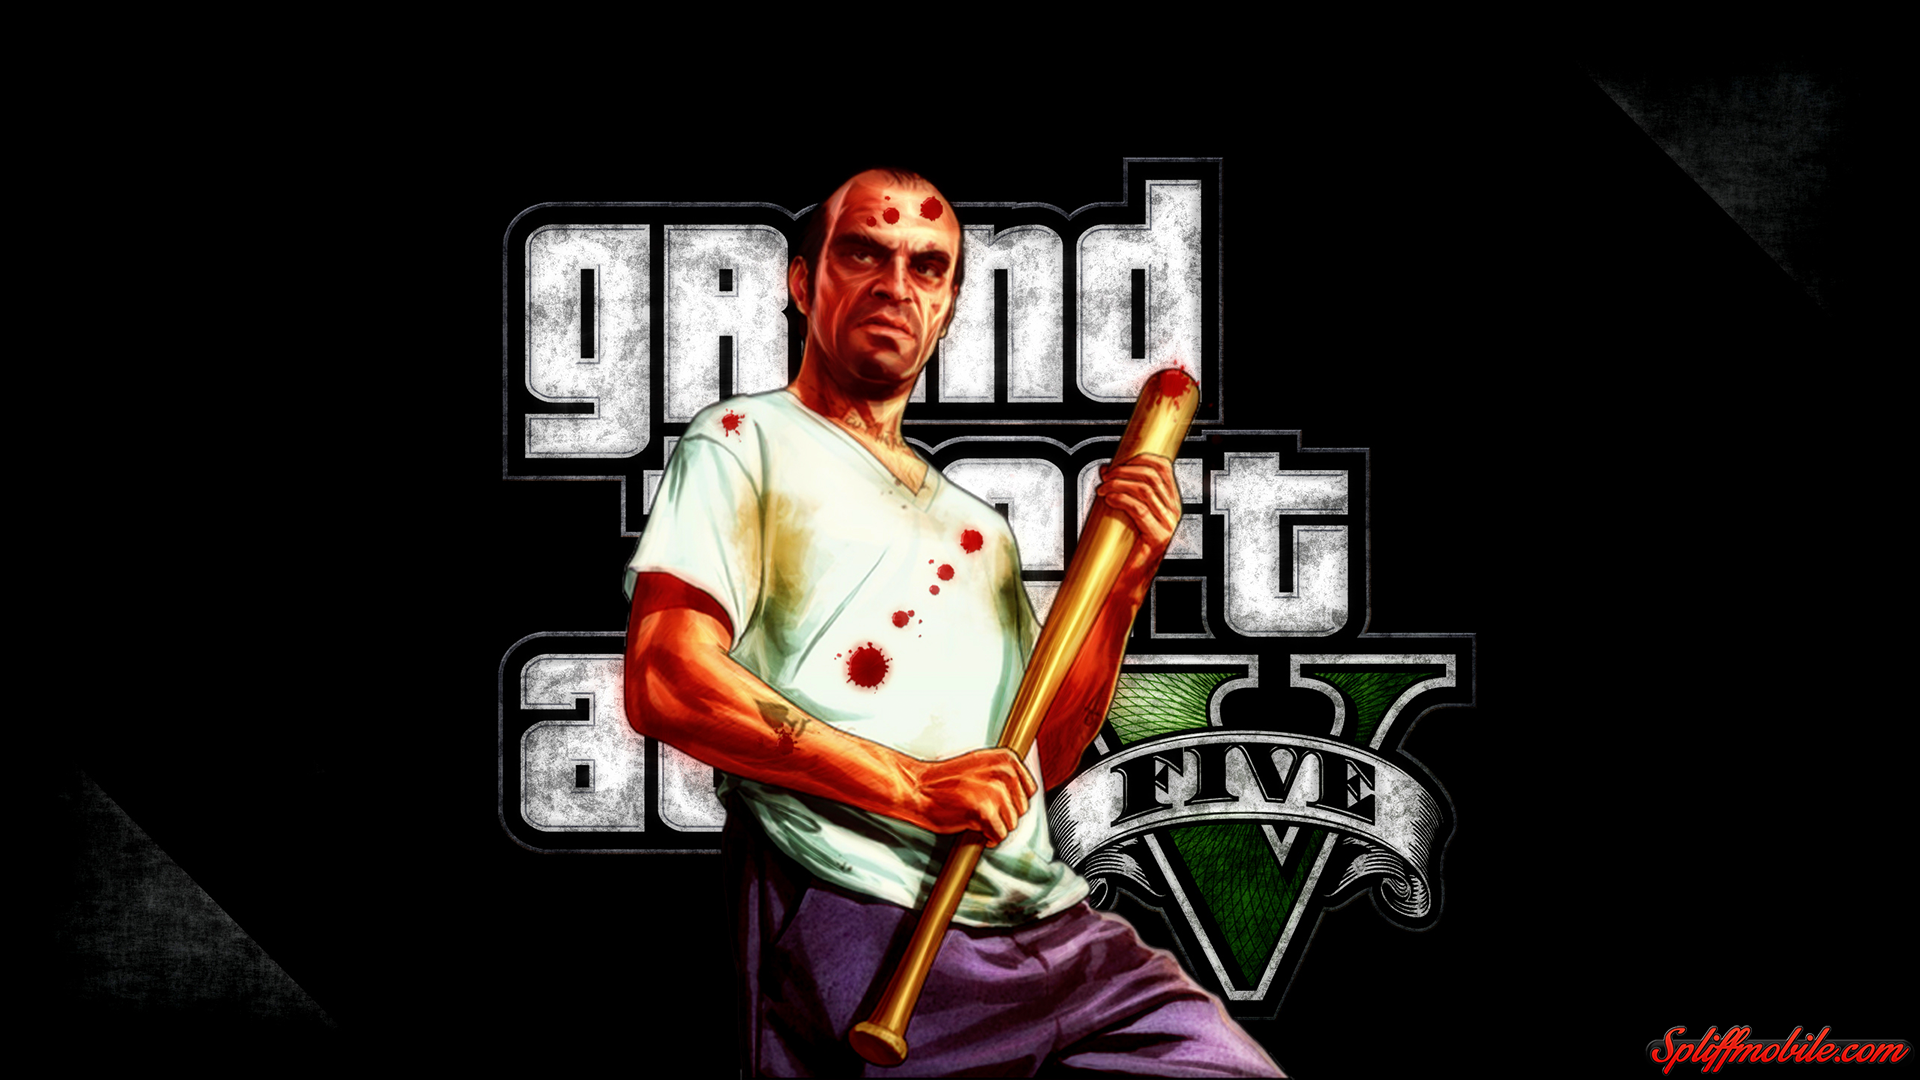 Cool Gta V Trevor Wallpaper For Free Download